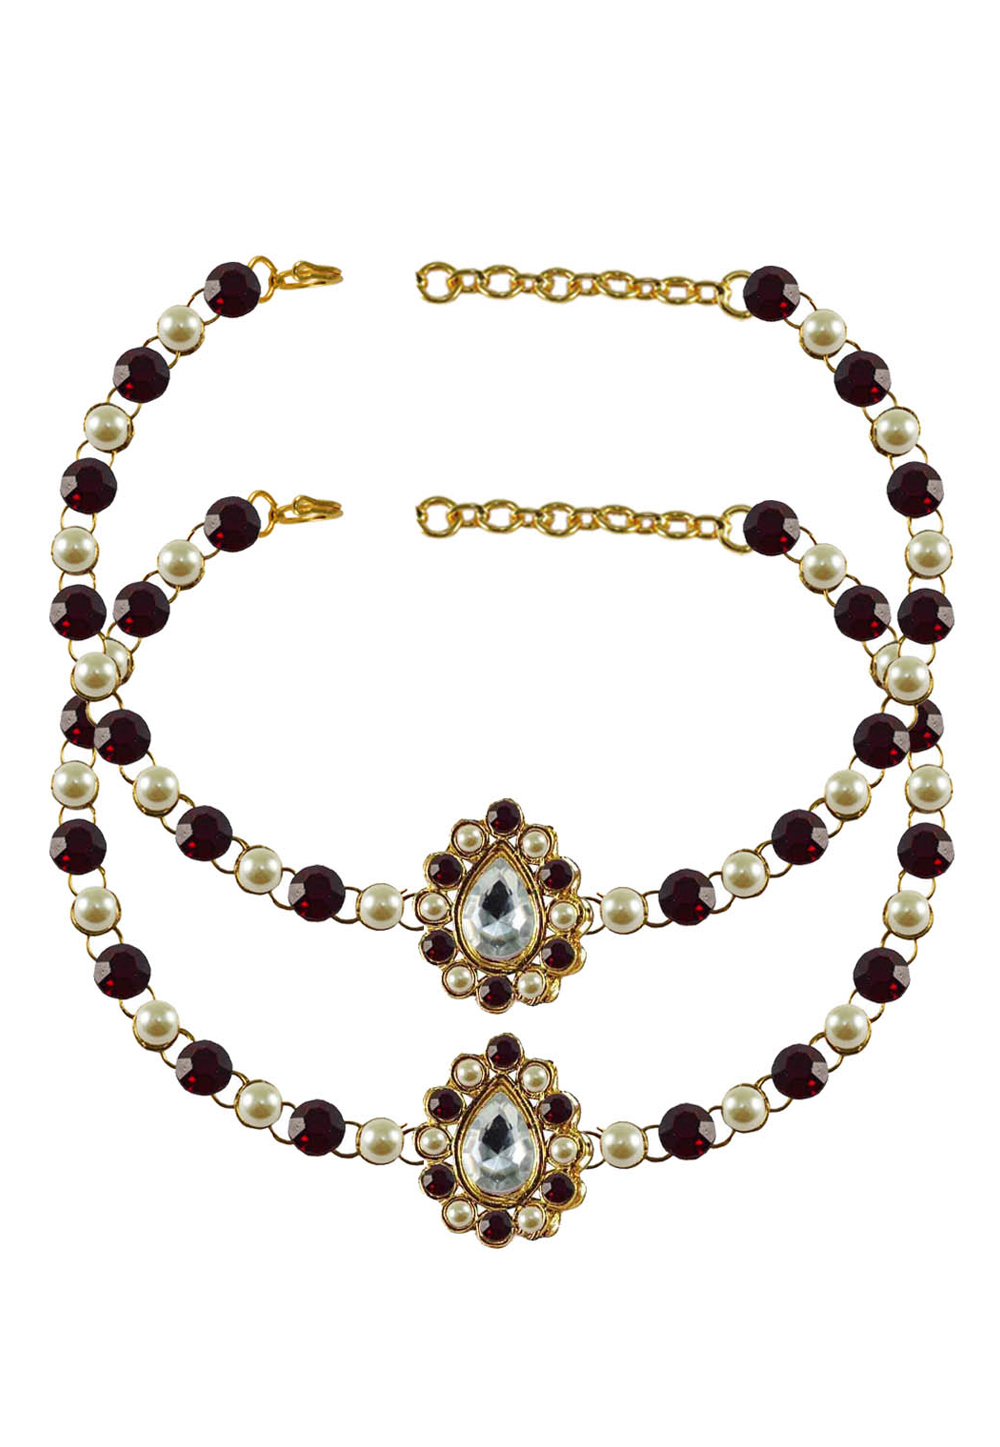 Maroon Brass Gold Plated Anklets 171346